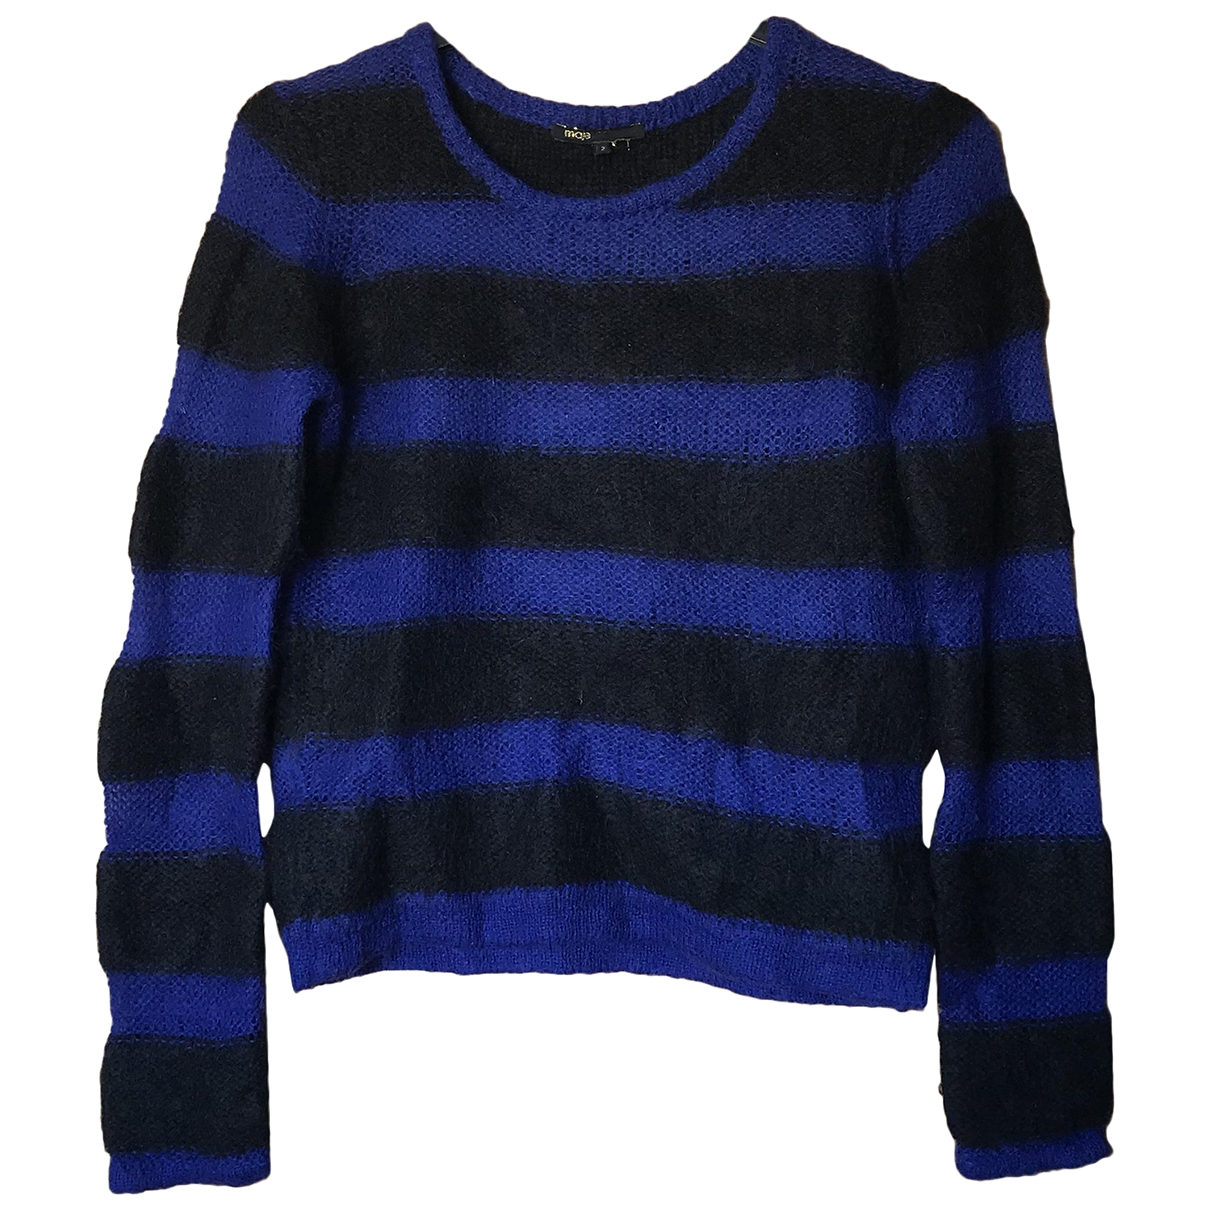 Maje \N Pullover in  Blau Wolle